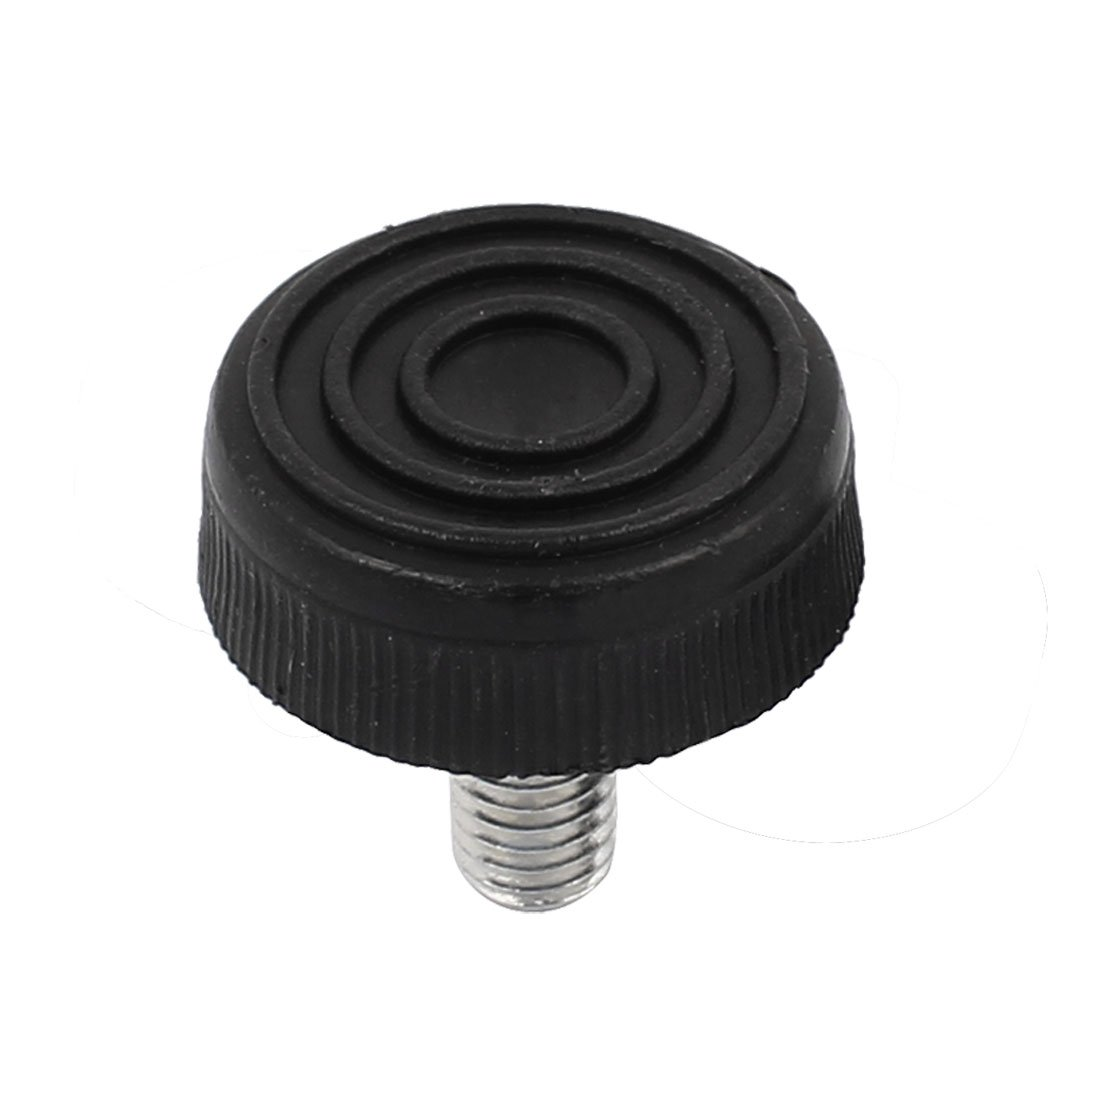 uxcell M8 Male Thread Furniture Table Plastic Base Adjustable Leveling Feet Black